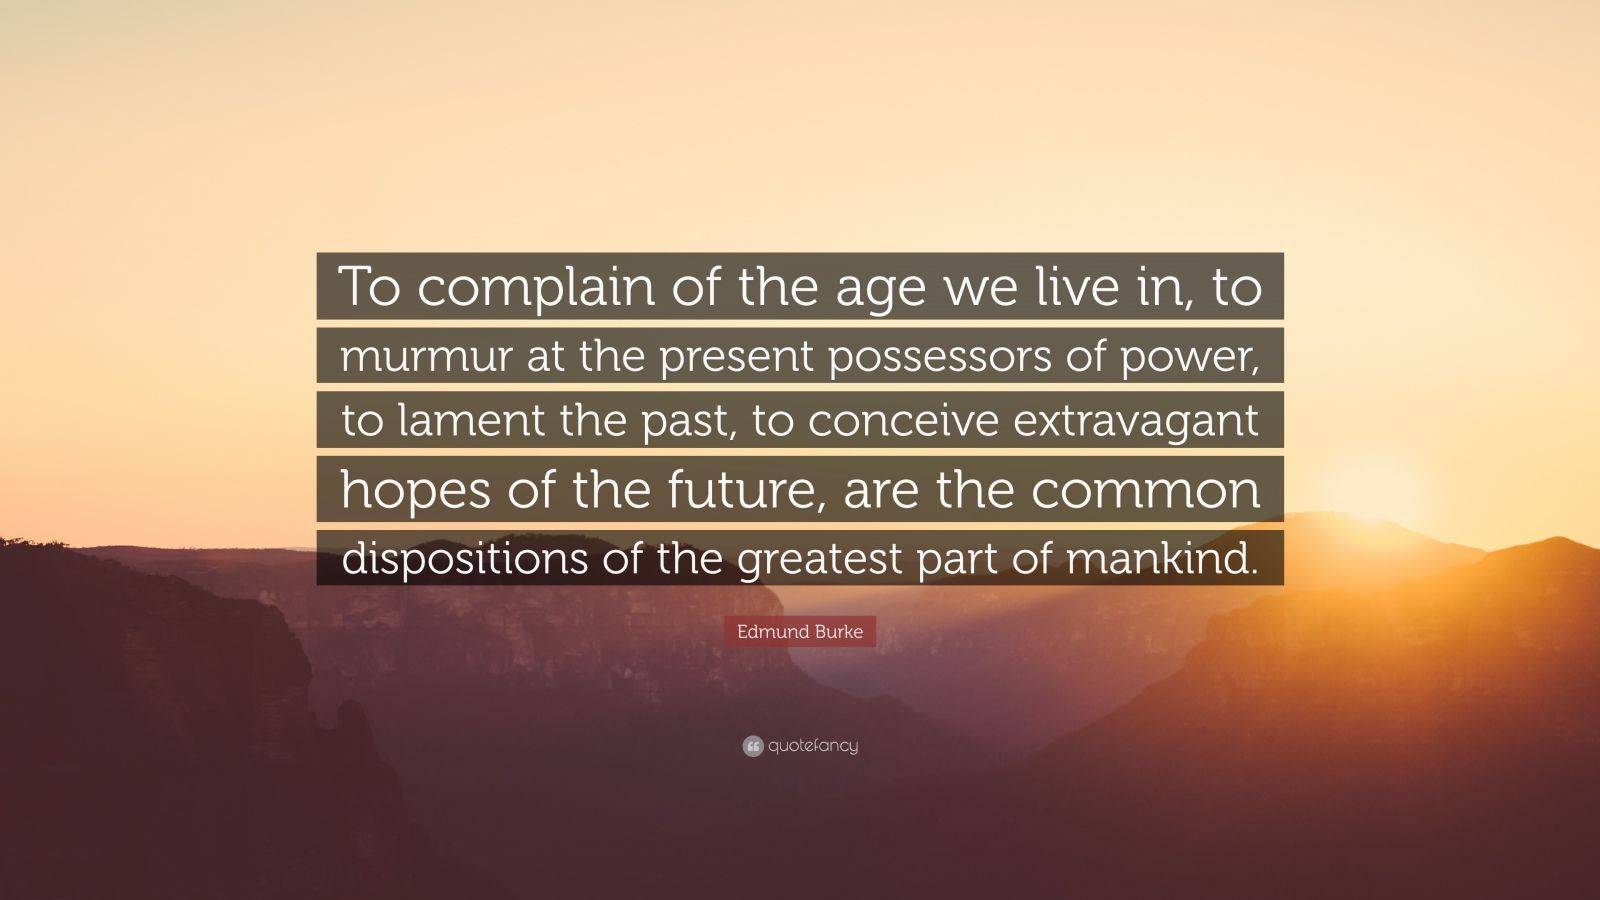 "Edmund Burke Quote: ""To complain of the age we live in, to murmur at the present possessors of power, to lament the past, to conceive extravagant hopes of the future, are the common dispositions of the greatest part of mankind."""